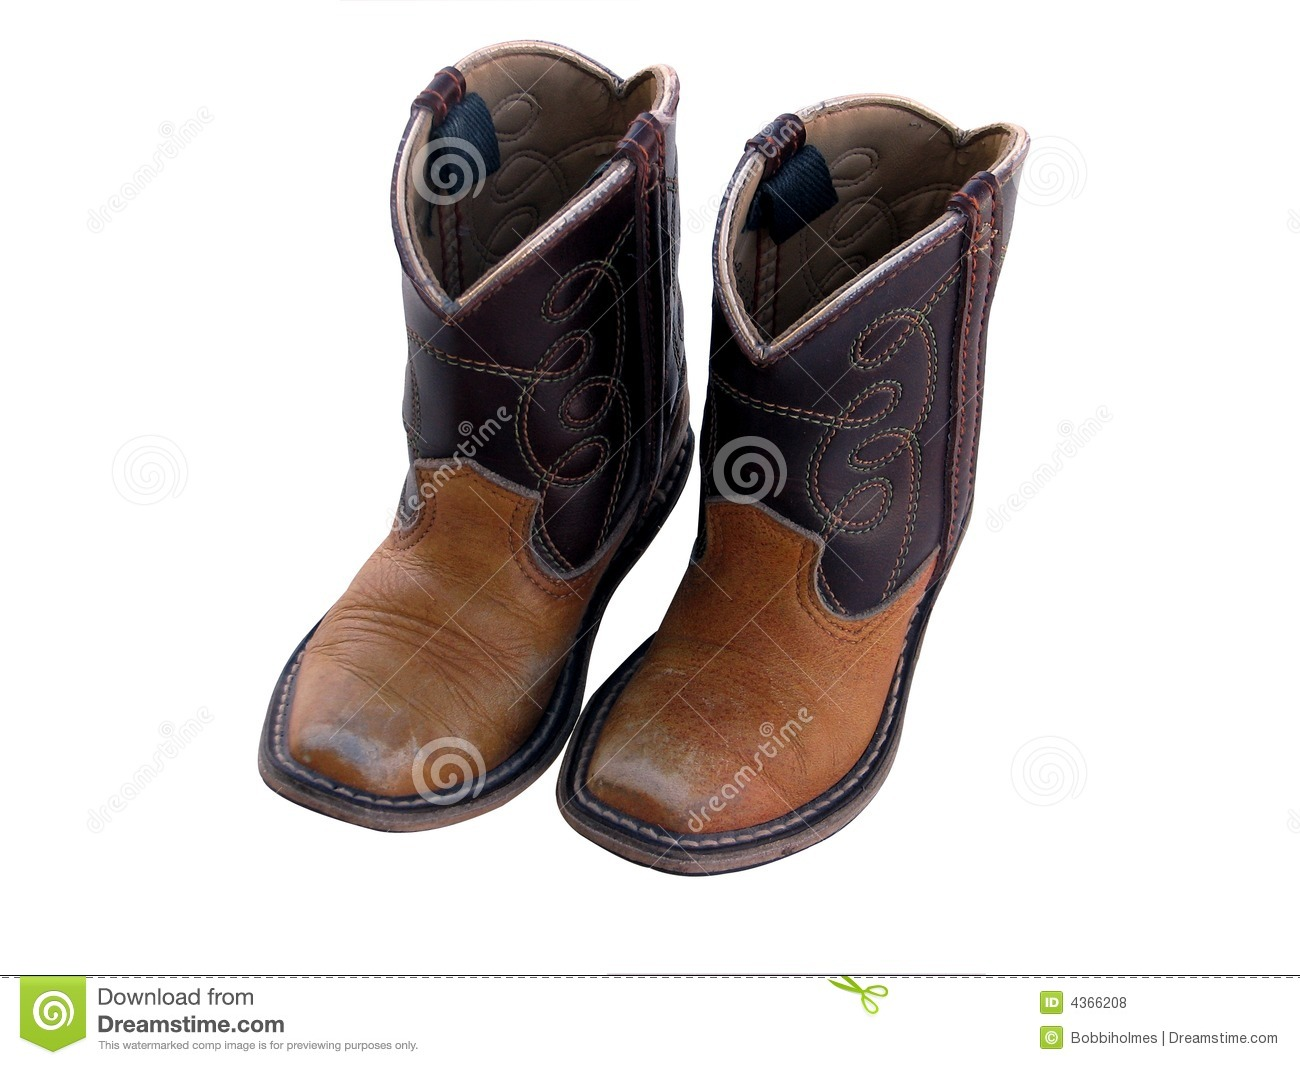 23a964381db Little boy cowboy boots stock photo. Image of leather - 4366208